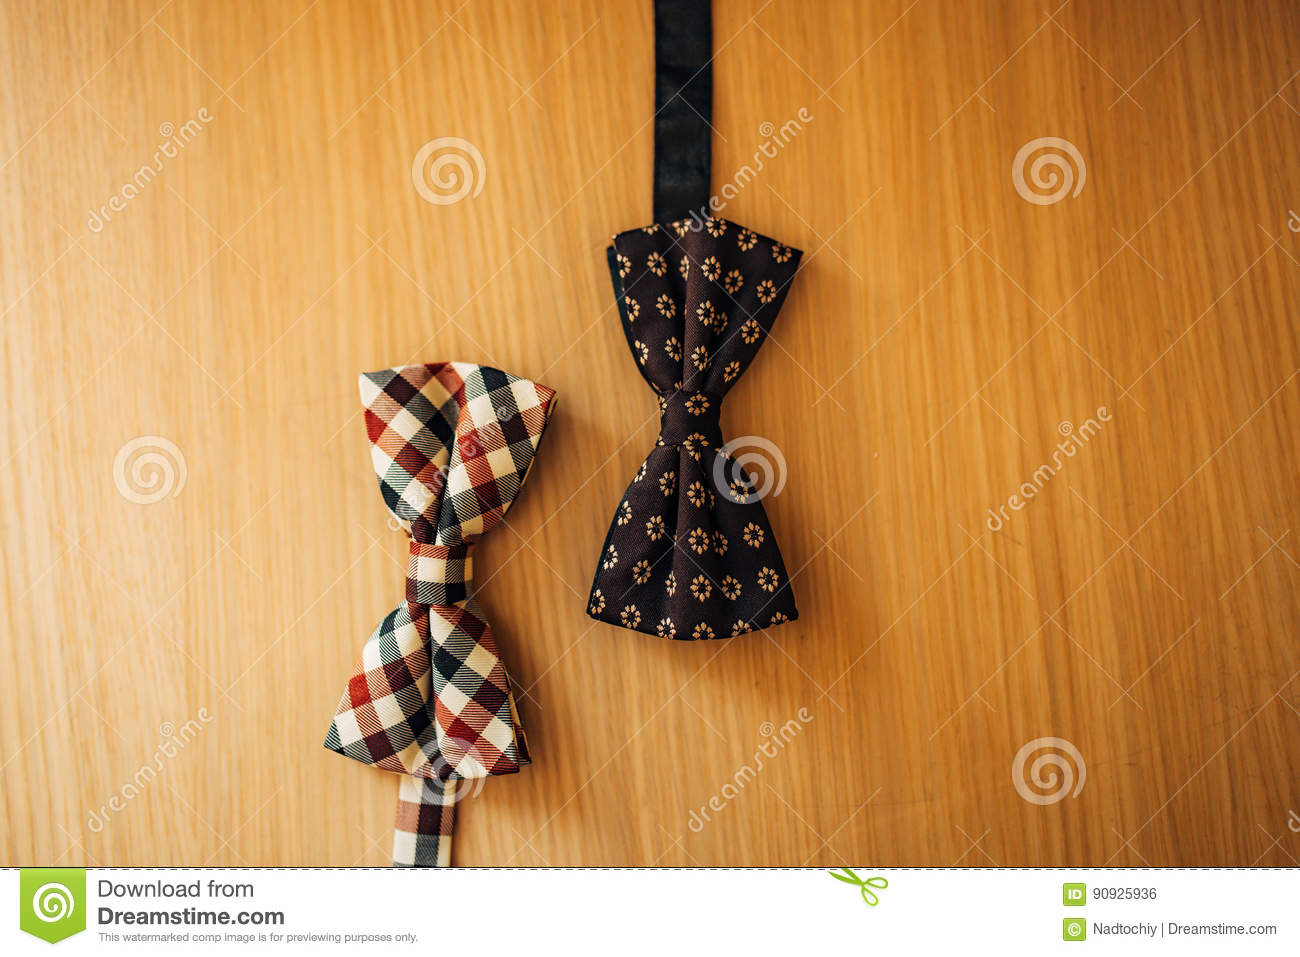 Tie Butterfly on a wooden background